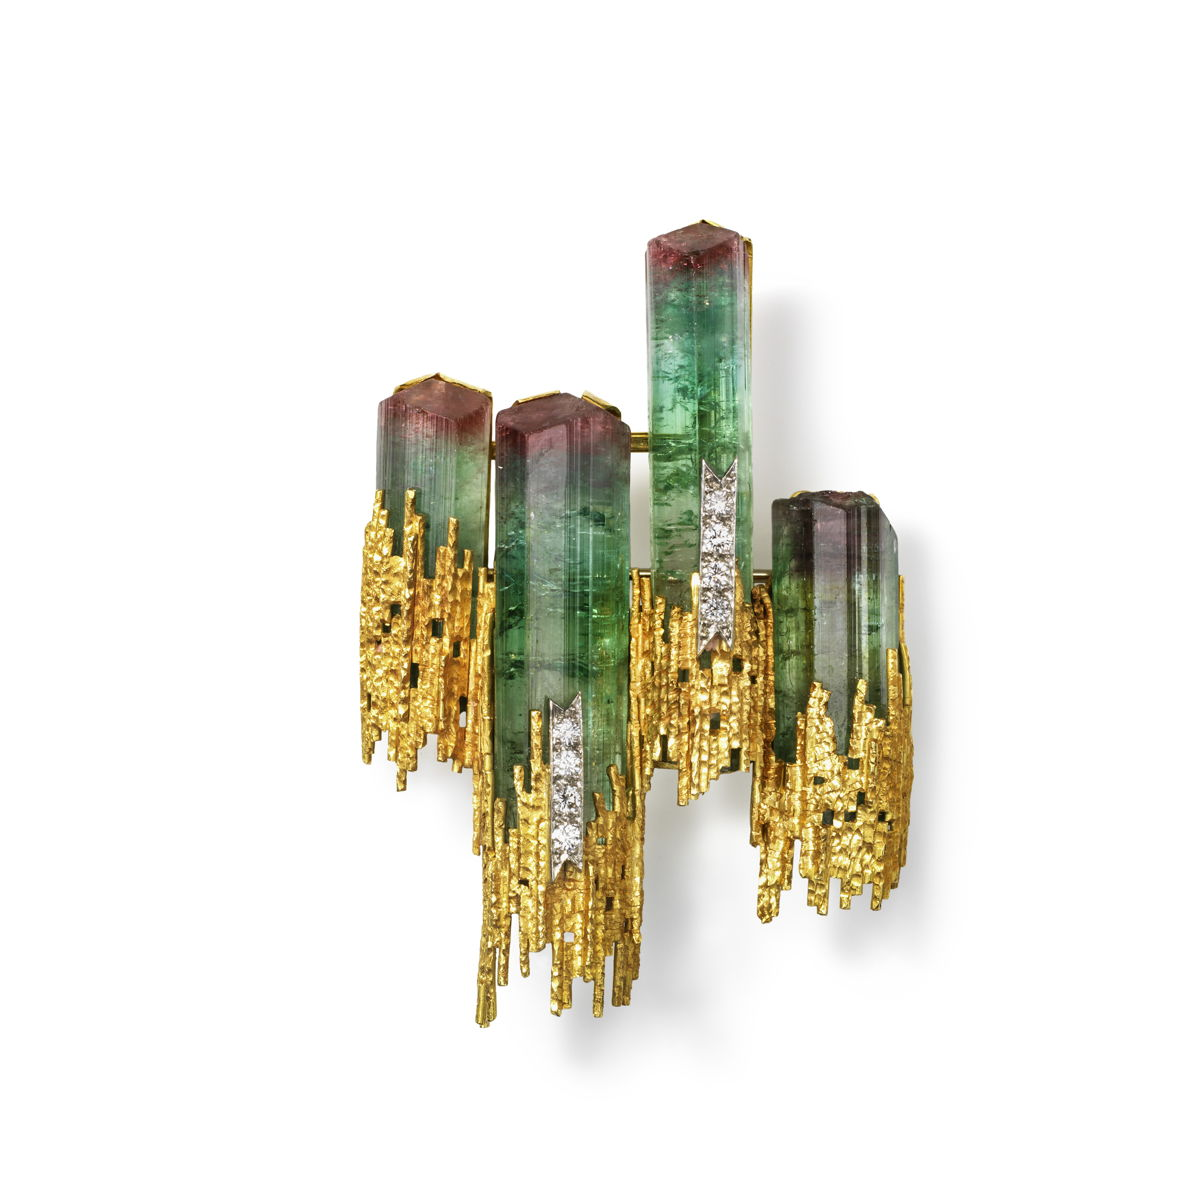 Andrew Grima (1921-2007), Italy, worked in England, Brooch, 1969, gold, watermelon tourmaline, diamonds, Courtesy of the Cincinnati Art Museum, Collection of Kimberly Klosterman, Photography by Tony Walsh